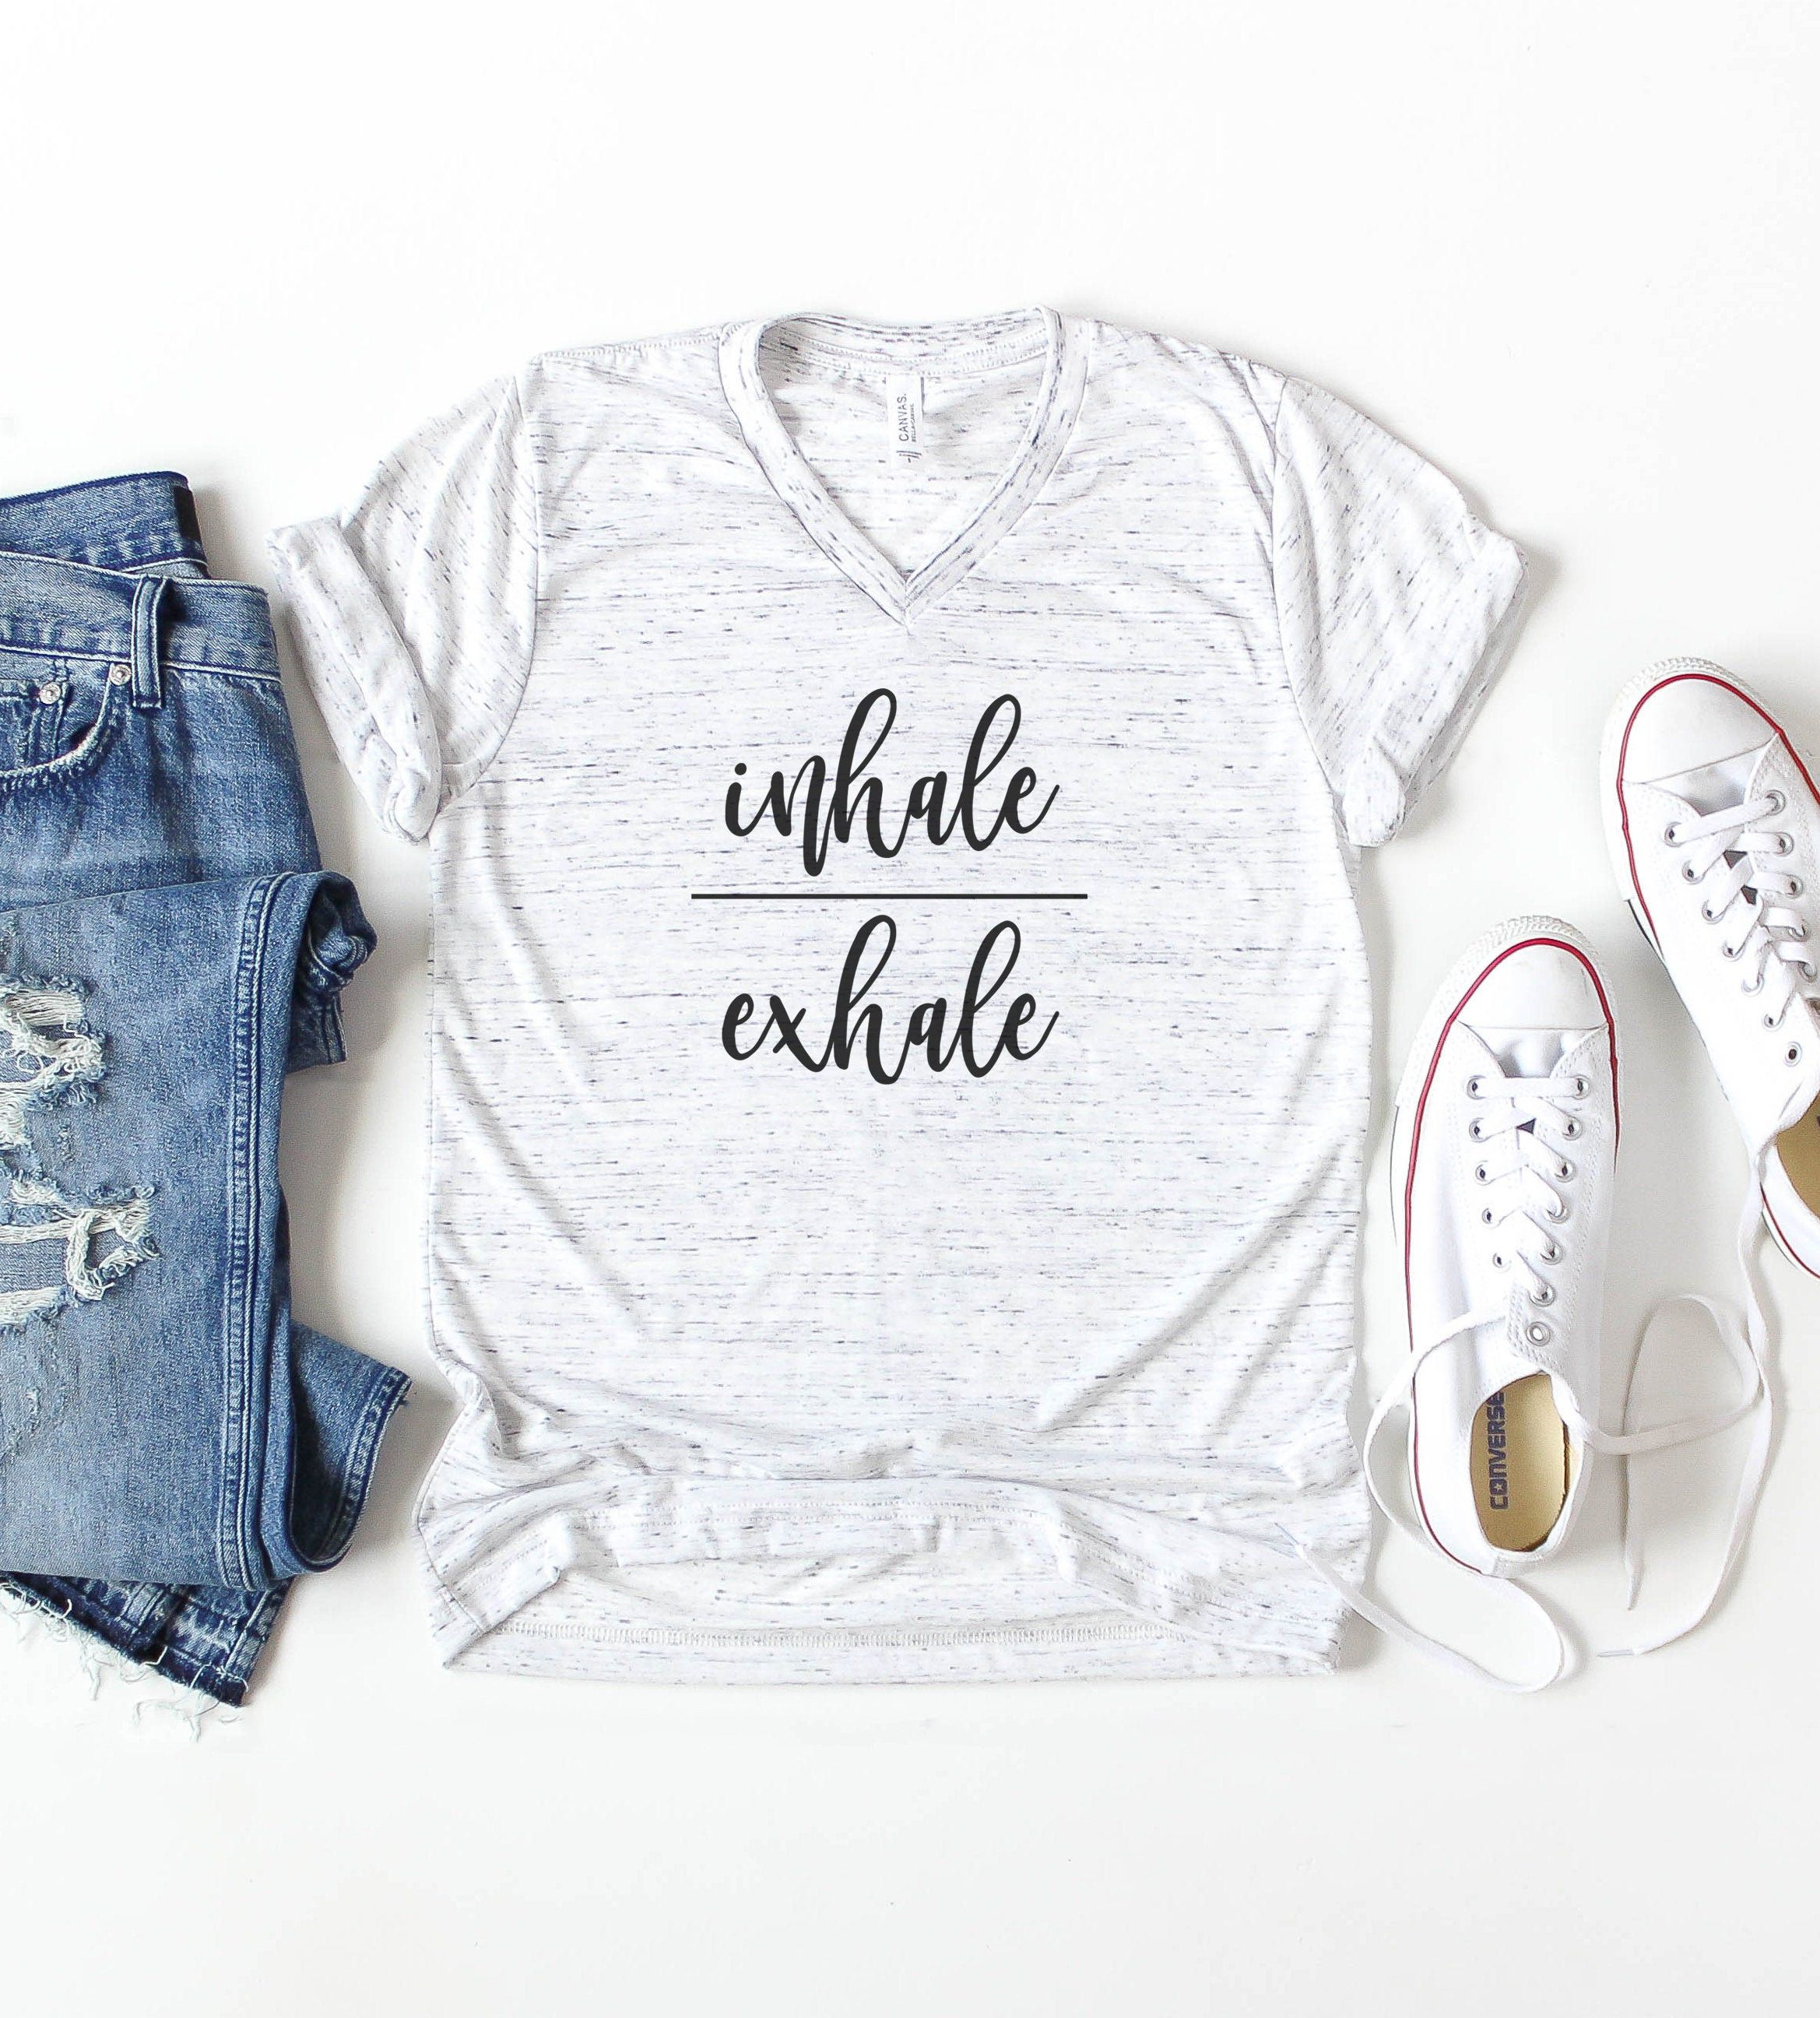 Inhale Exhale Shirt, Inhale Exhale t shirt, Yoga Shirt #inhaleexhale